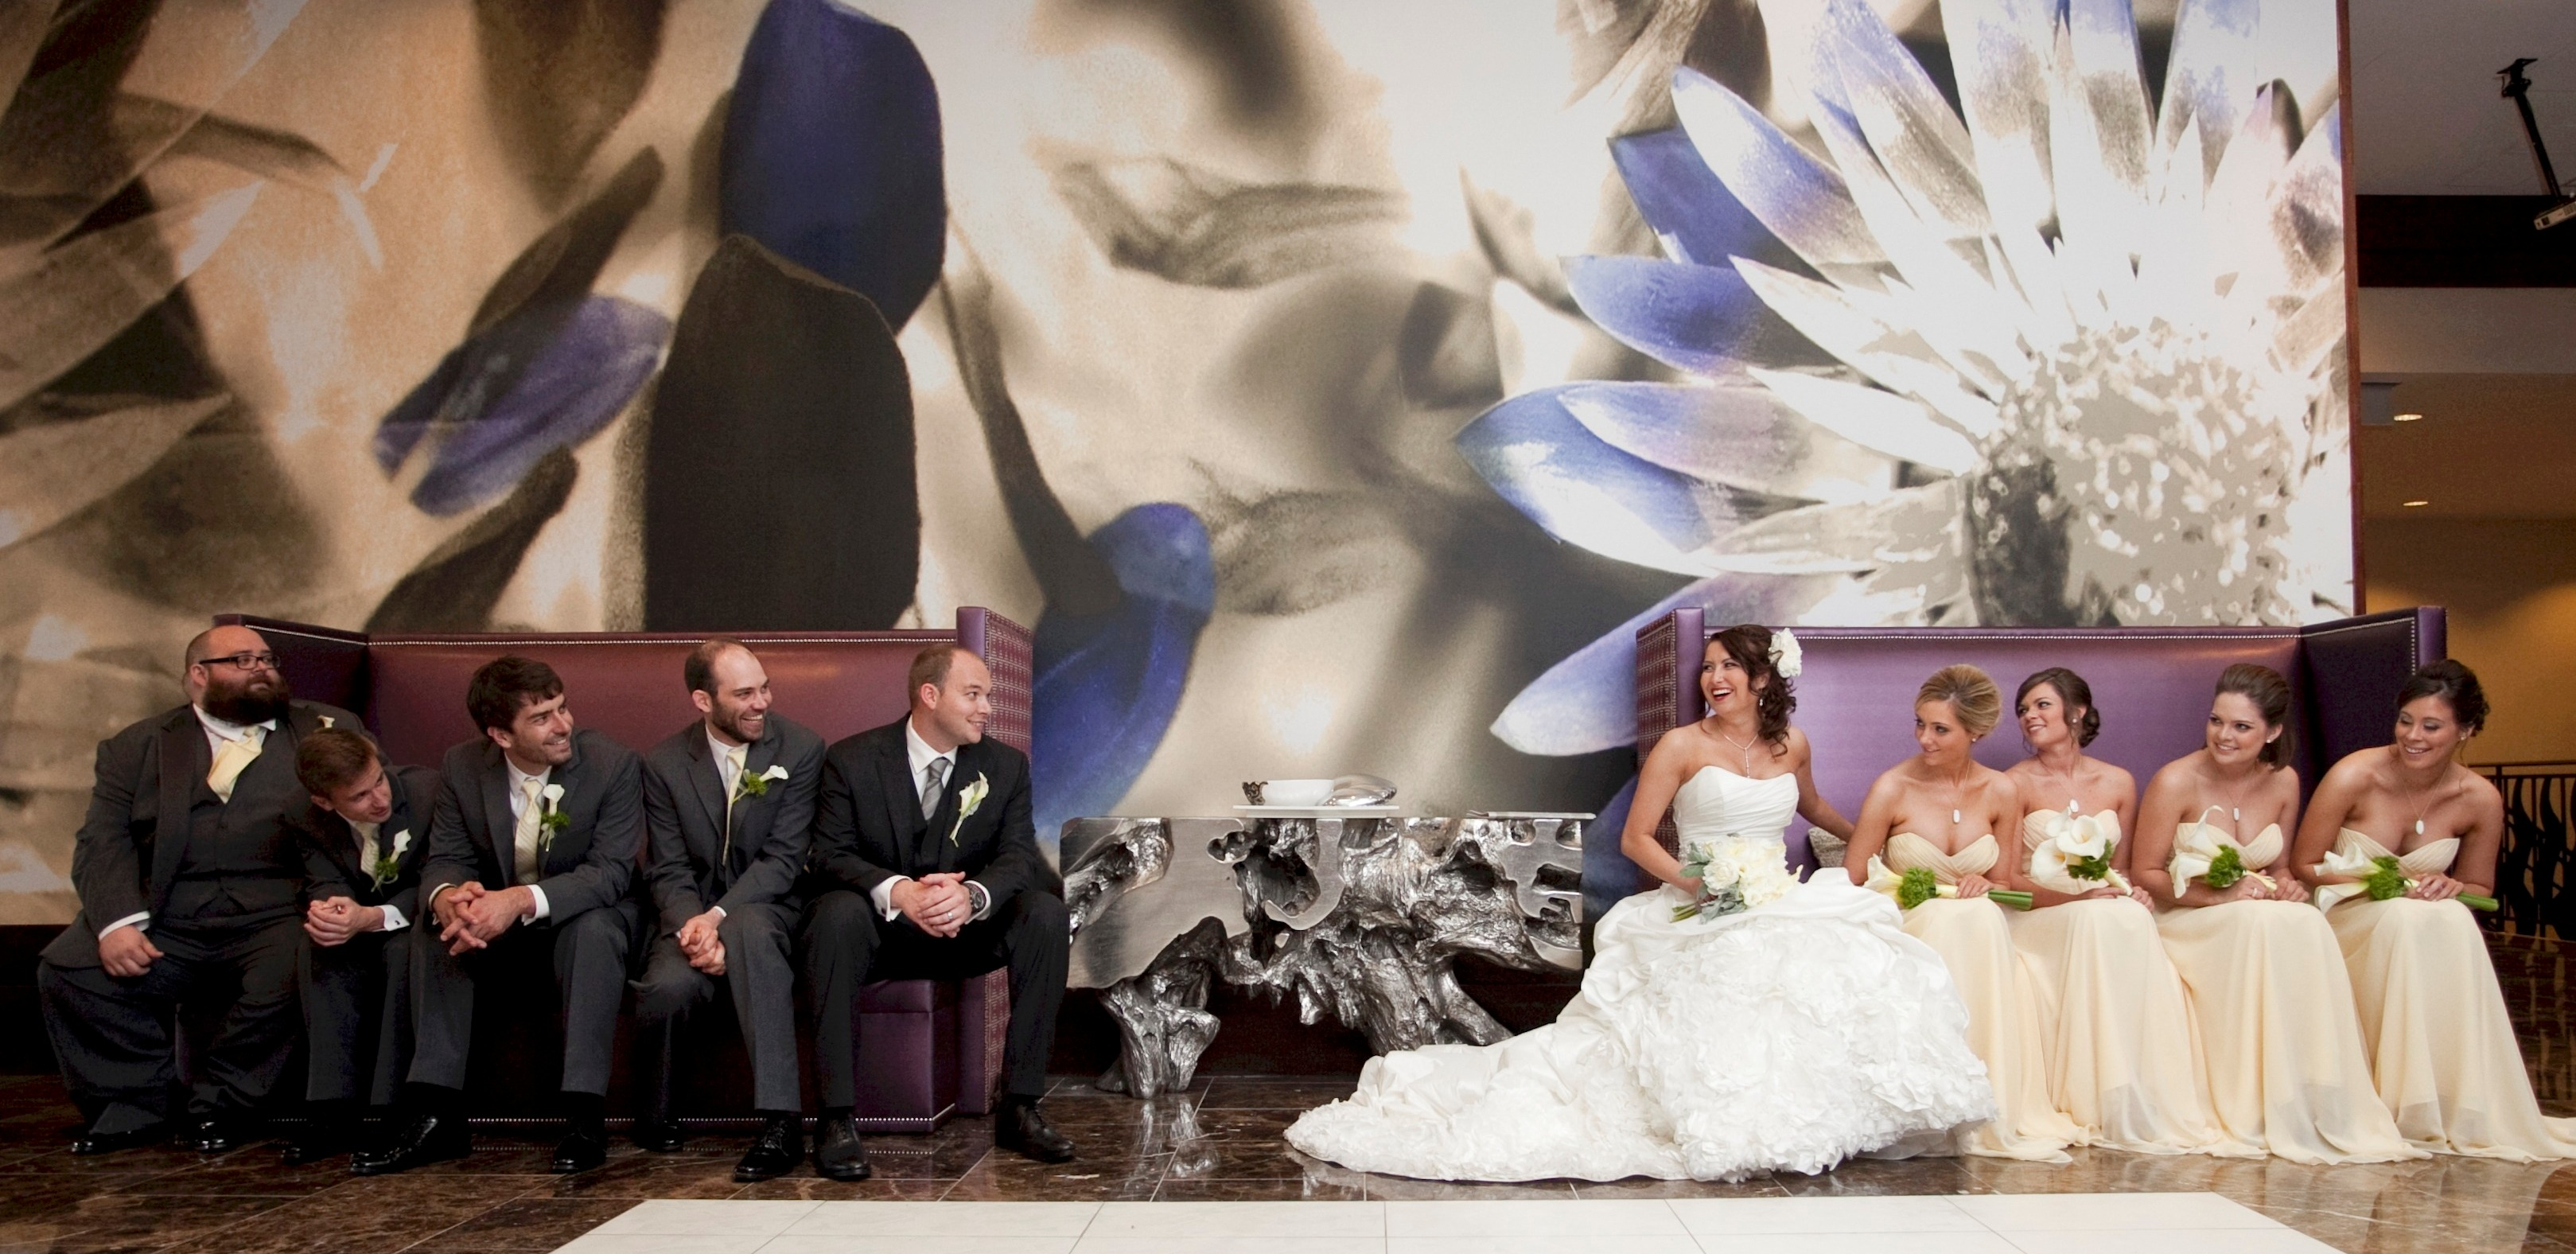 Wedding-Studio-Schaumburg-Illinois-077.jpg